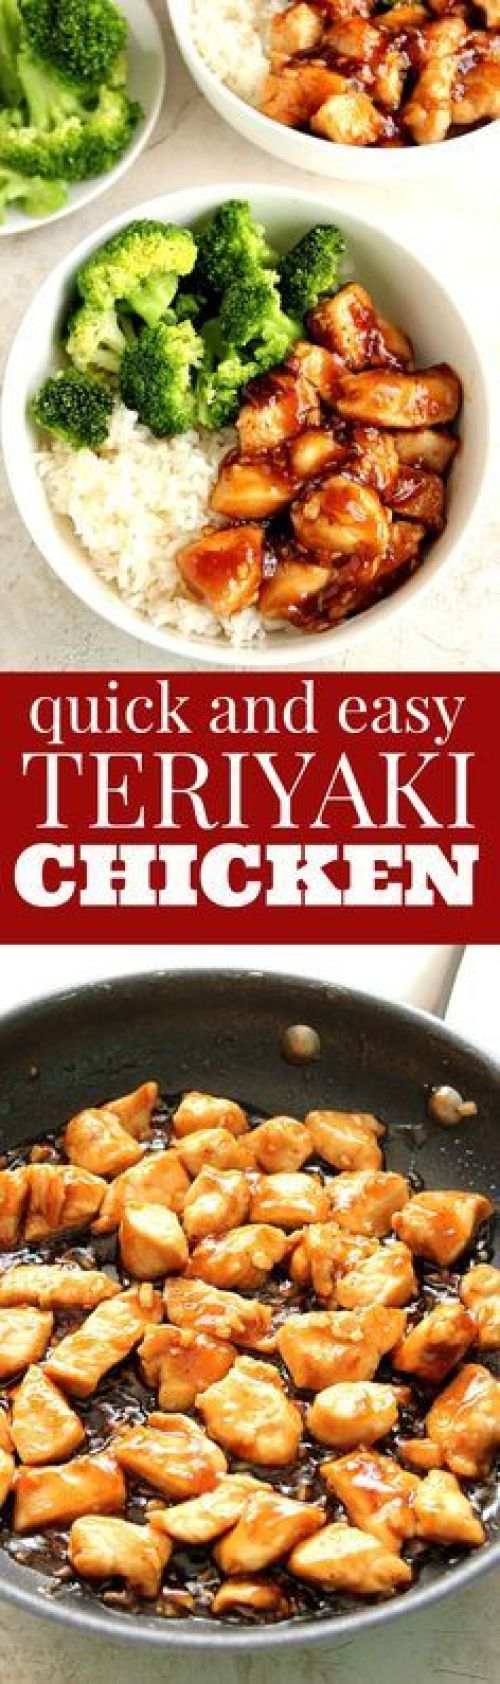 Quick Dinner Ideas - Quick and Easy Teriyaki Chicken Dinner Recipe via Crunchy Creamy Sweet